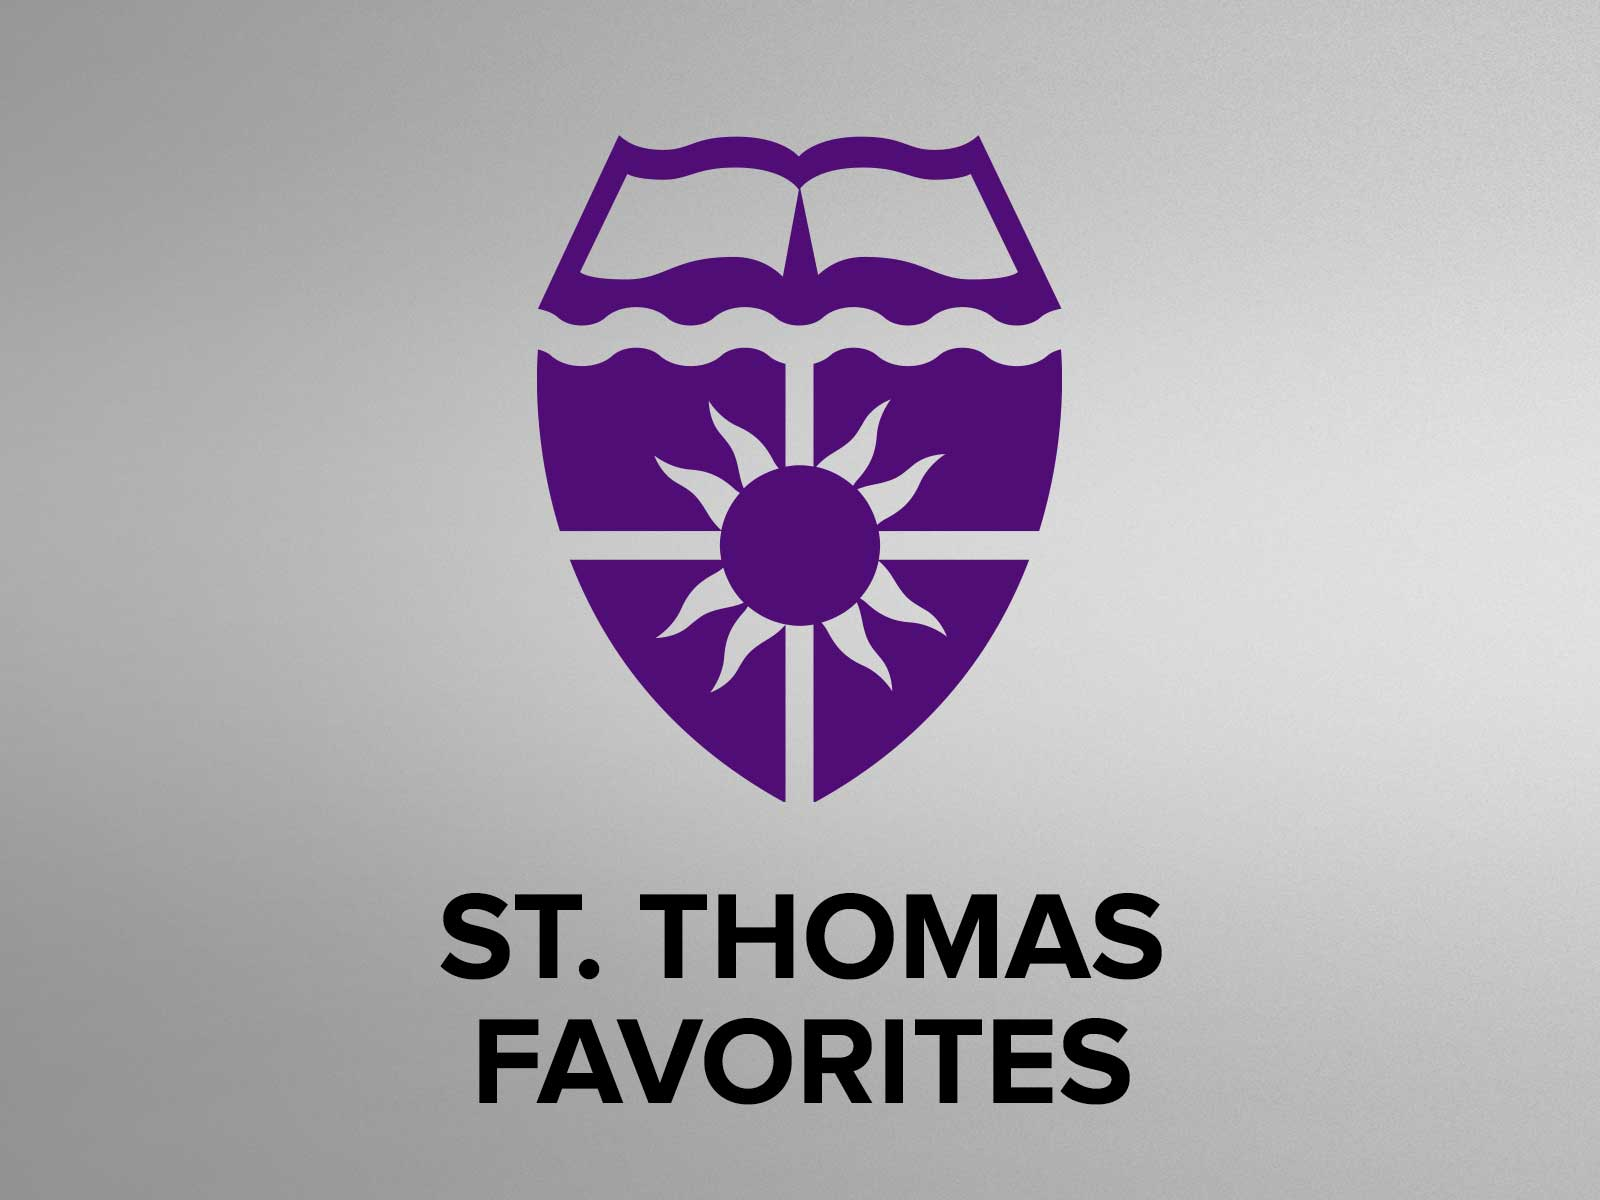 St. Thomas Favorites